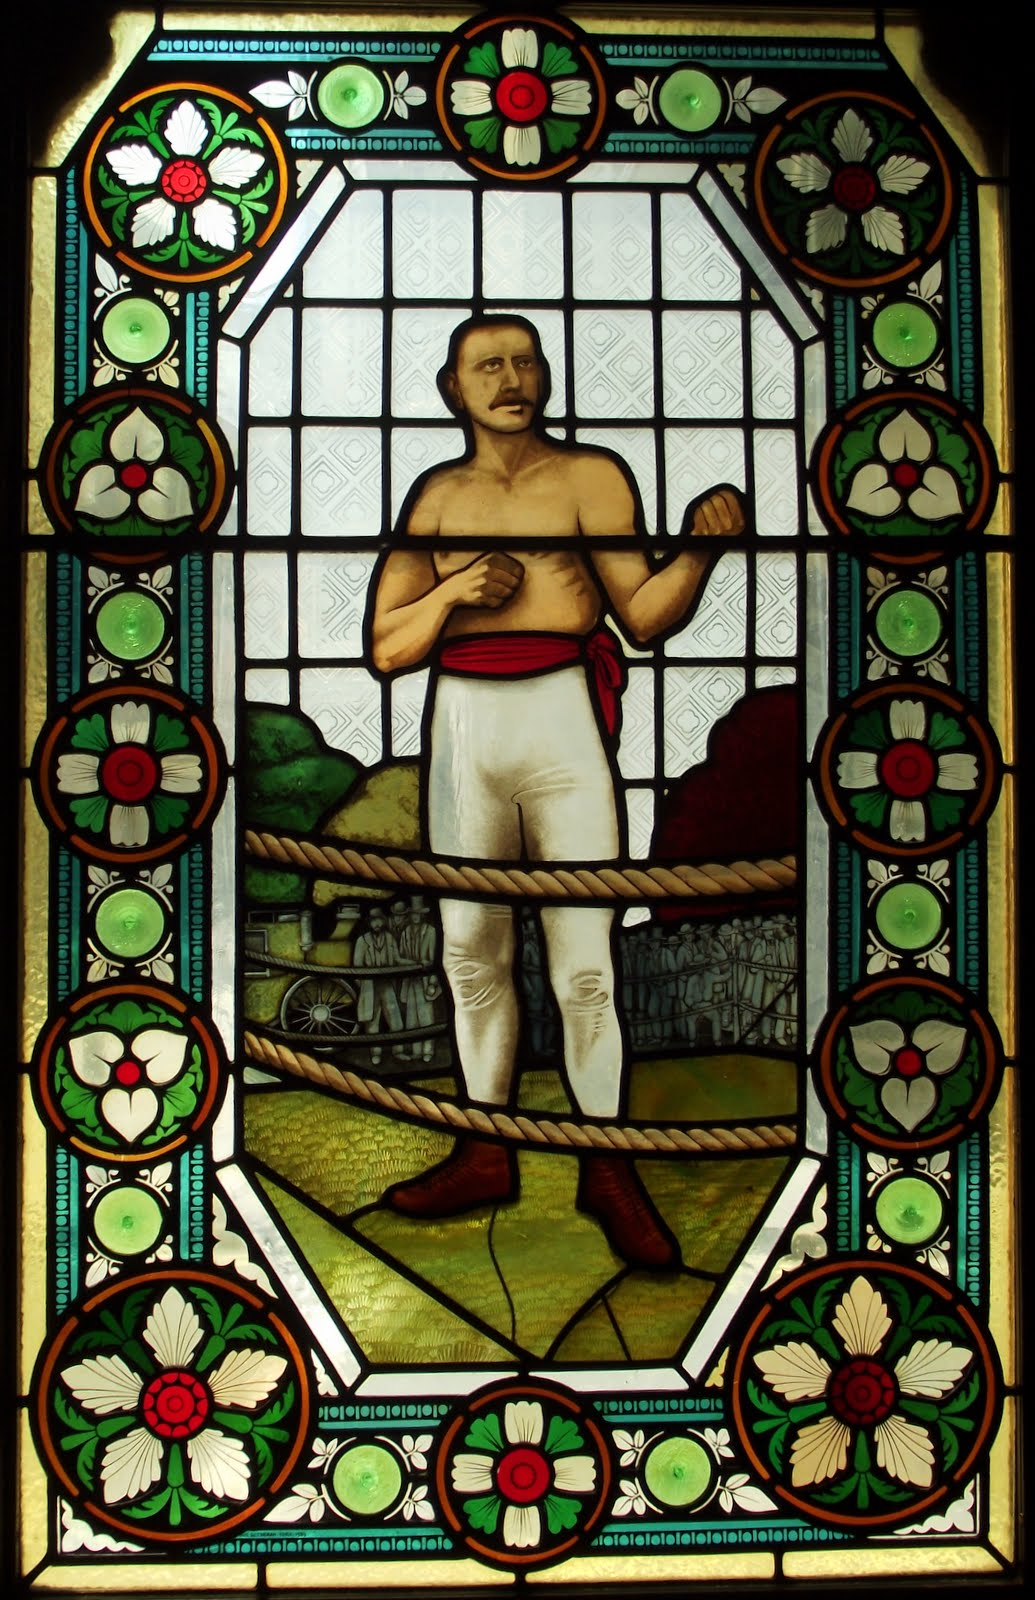 """Bob Fitzsimmons """"Ruby Robert"""" is the only Englishman to win three world titles at different weights 1862-1917"""